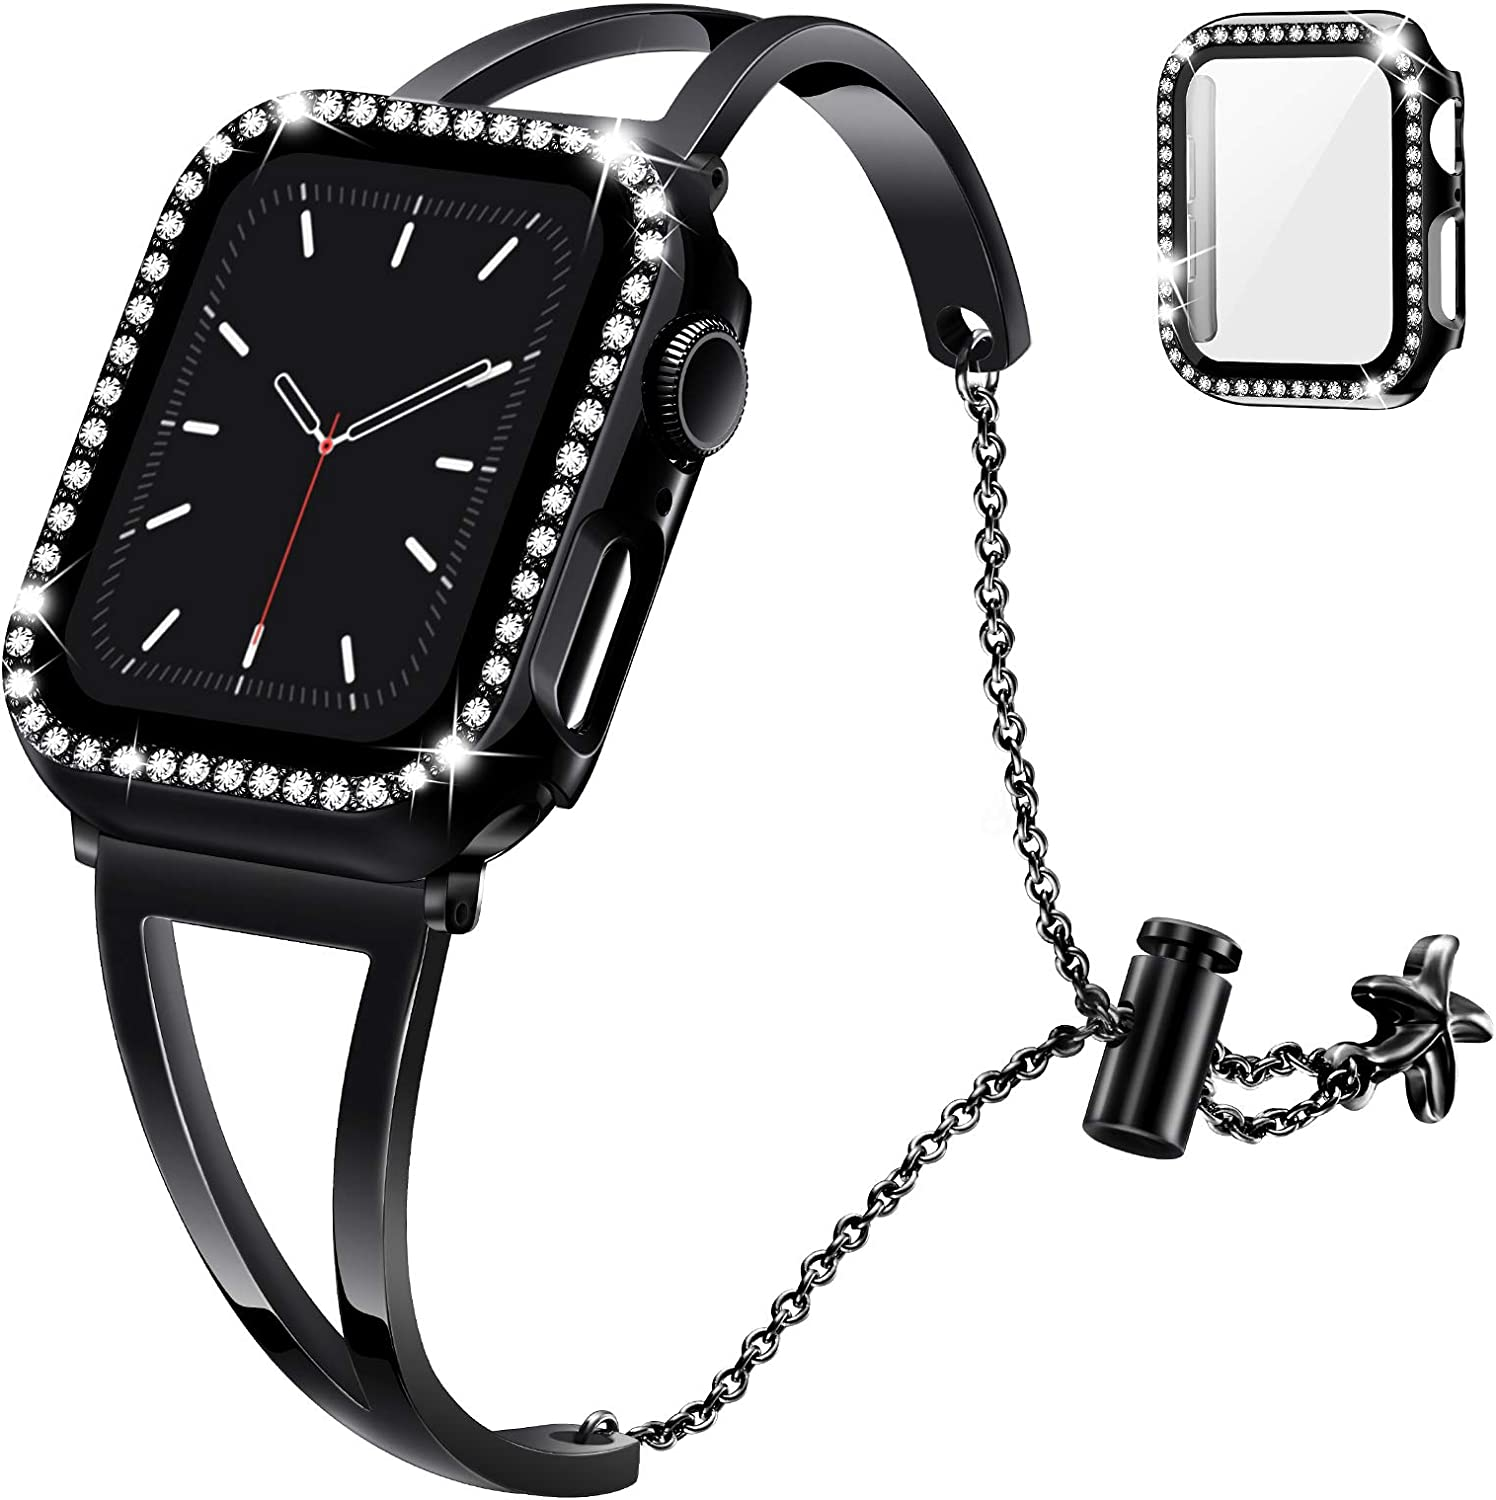 Recoppa Compatible with Apple Watch Band 40mm Series 6 5 4, Jewelry Bracelet Bangle Wristband and Bling Case with Tempered Glass Screen Protector for iWatch(Black/Black, 40mm)